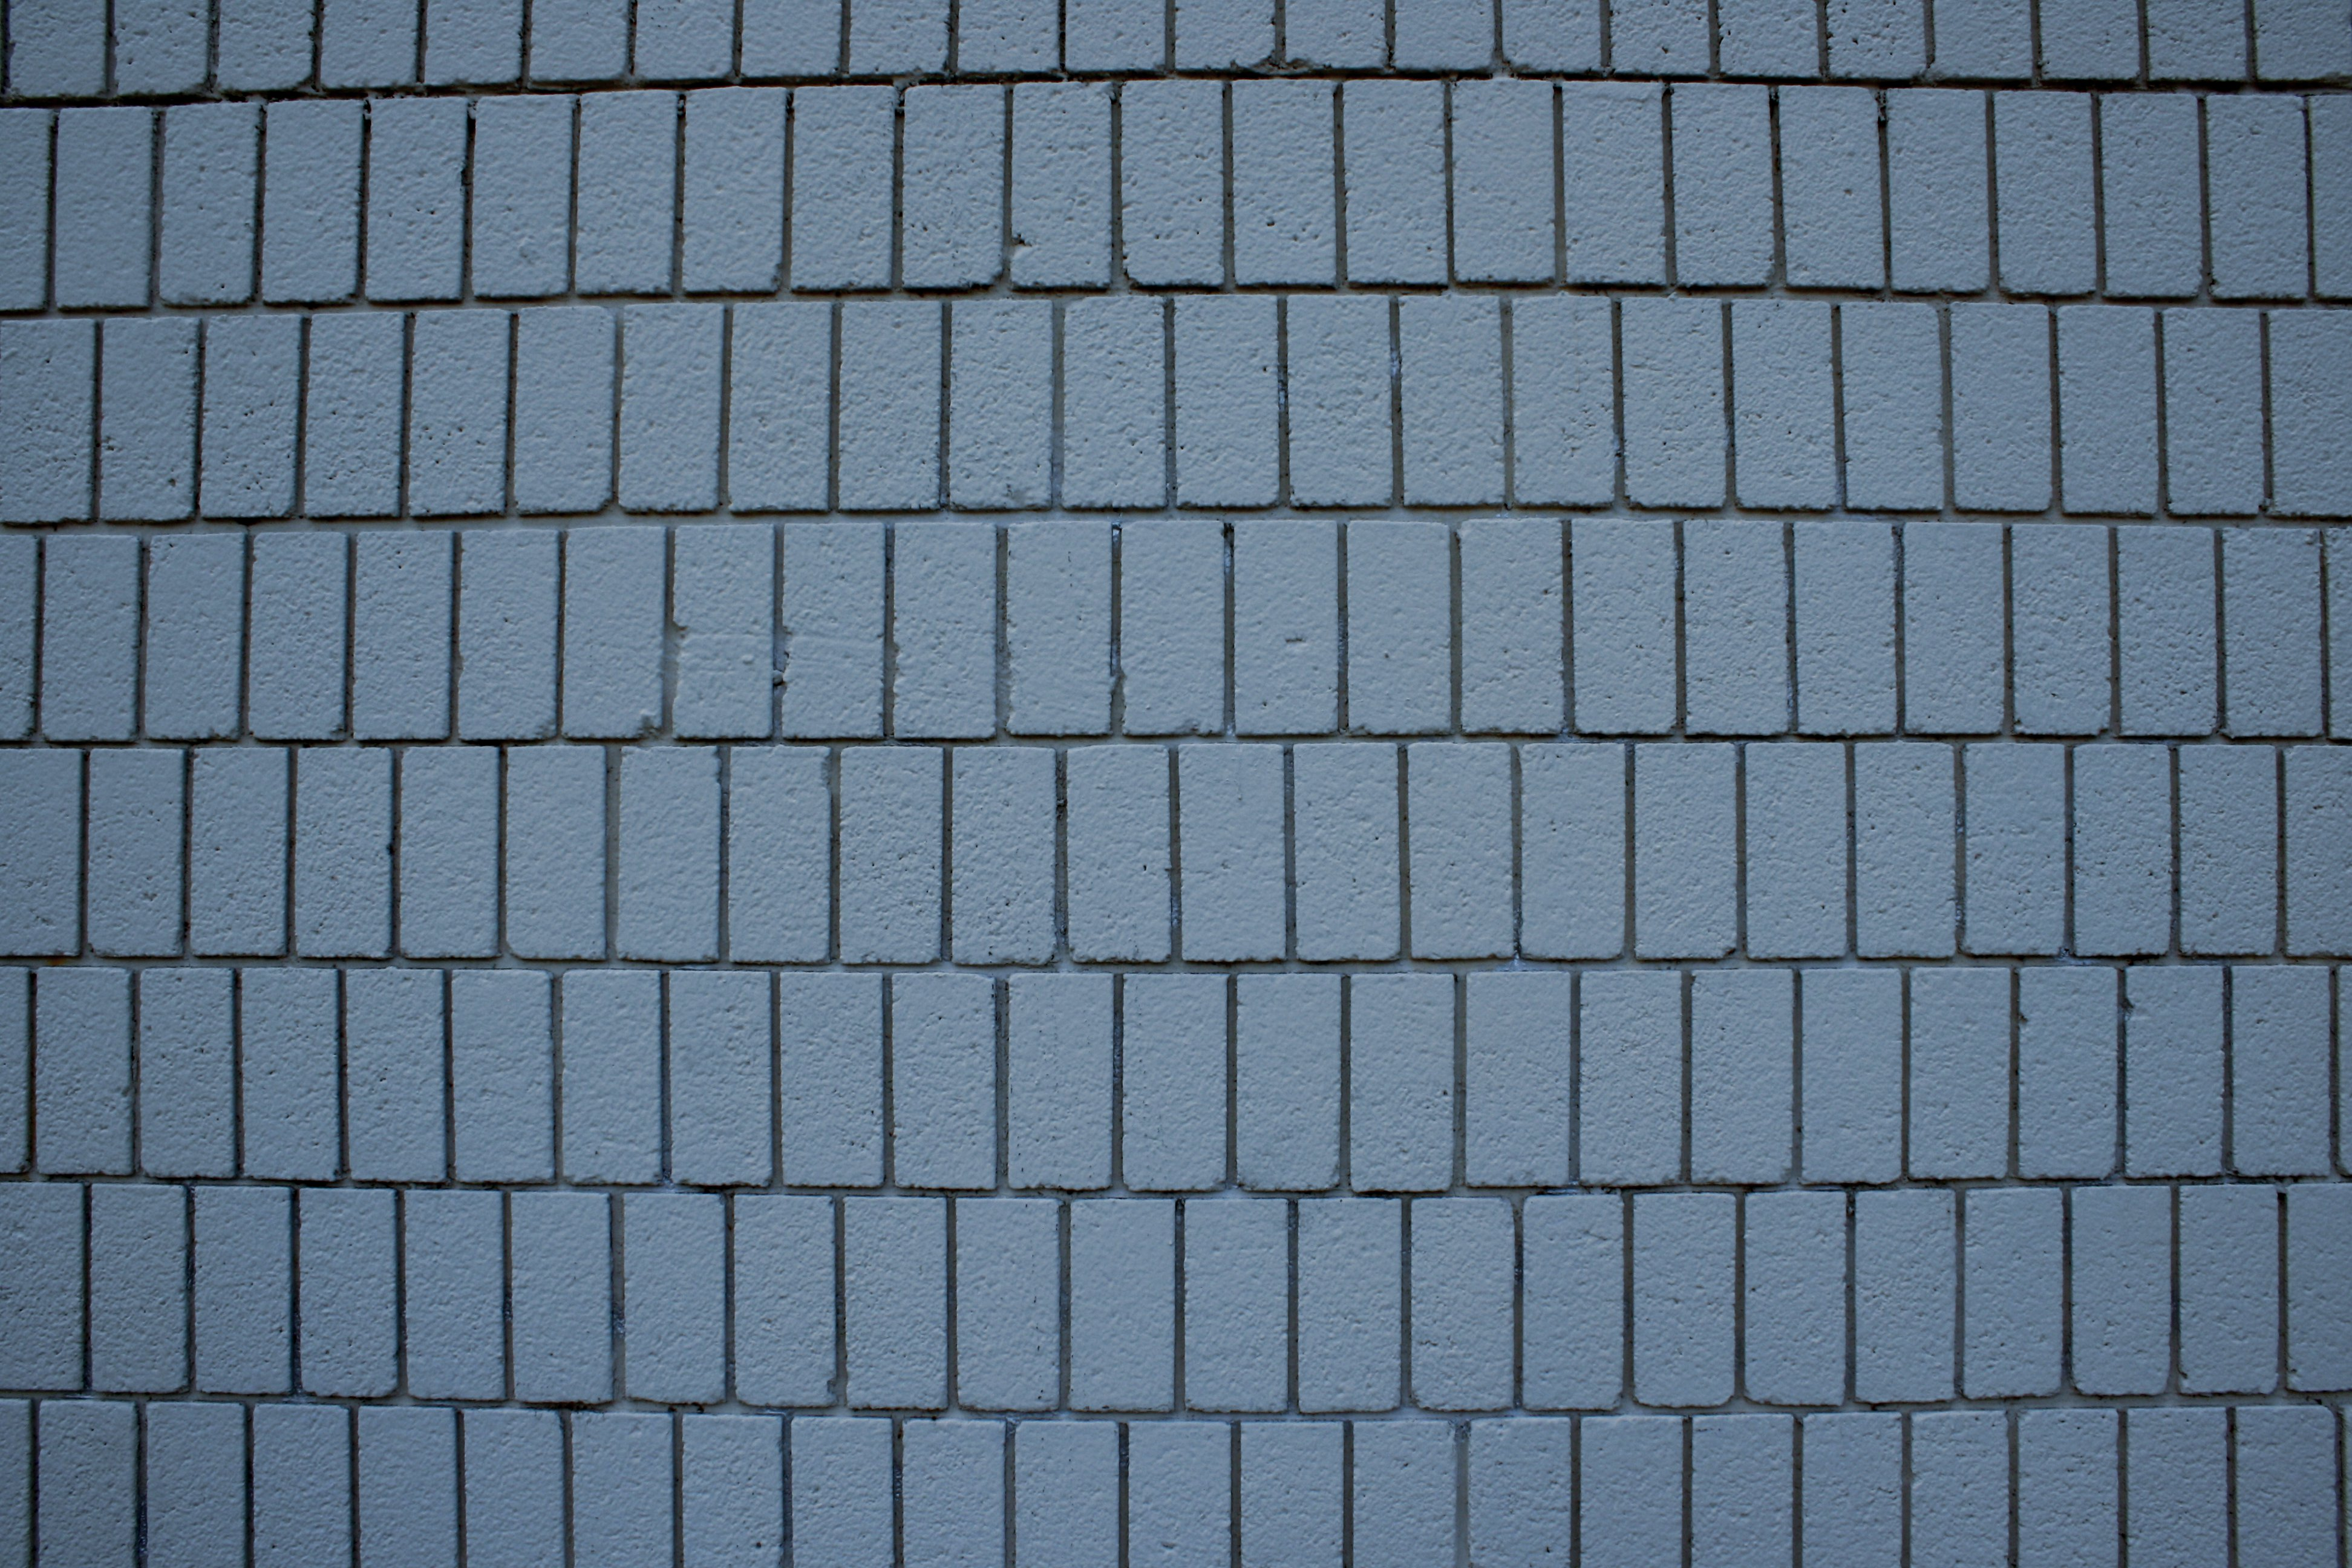 Click Here To Full Resolution Image Free High Photo Of A Blue Gray Colored Brick